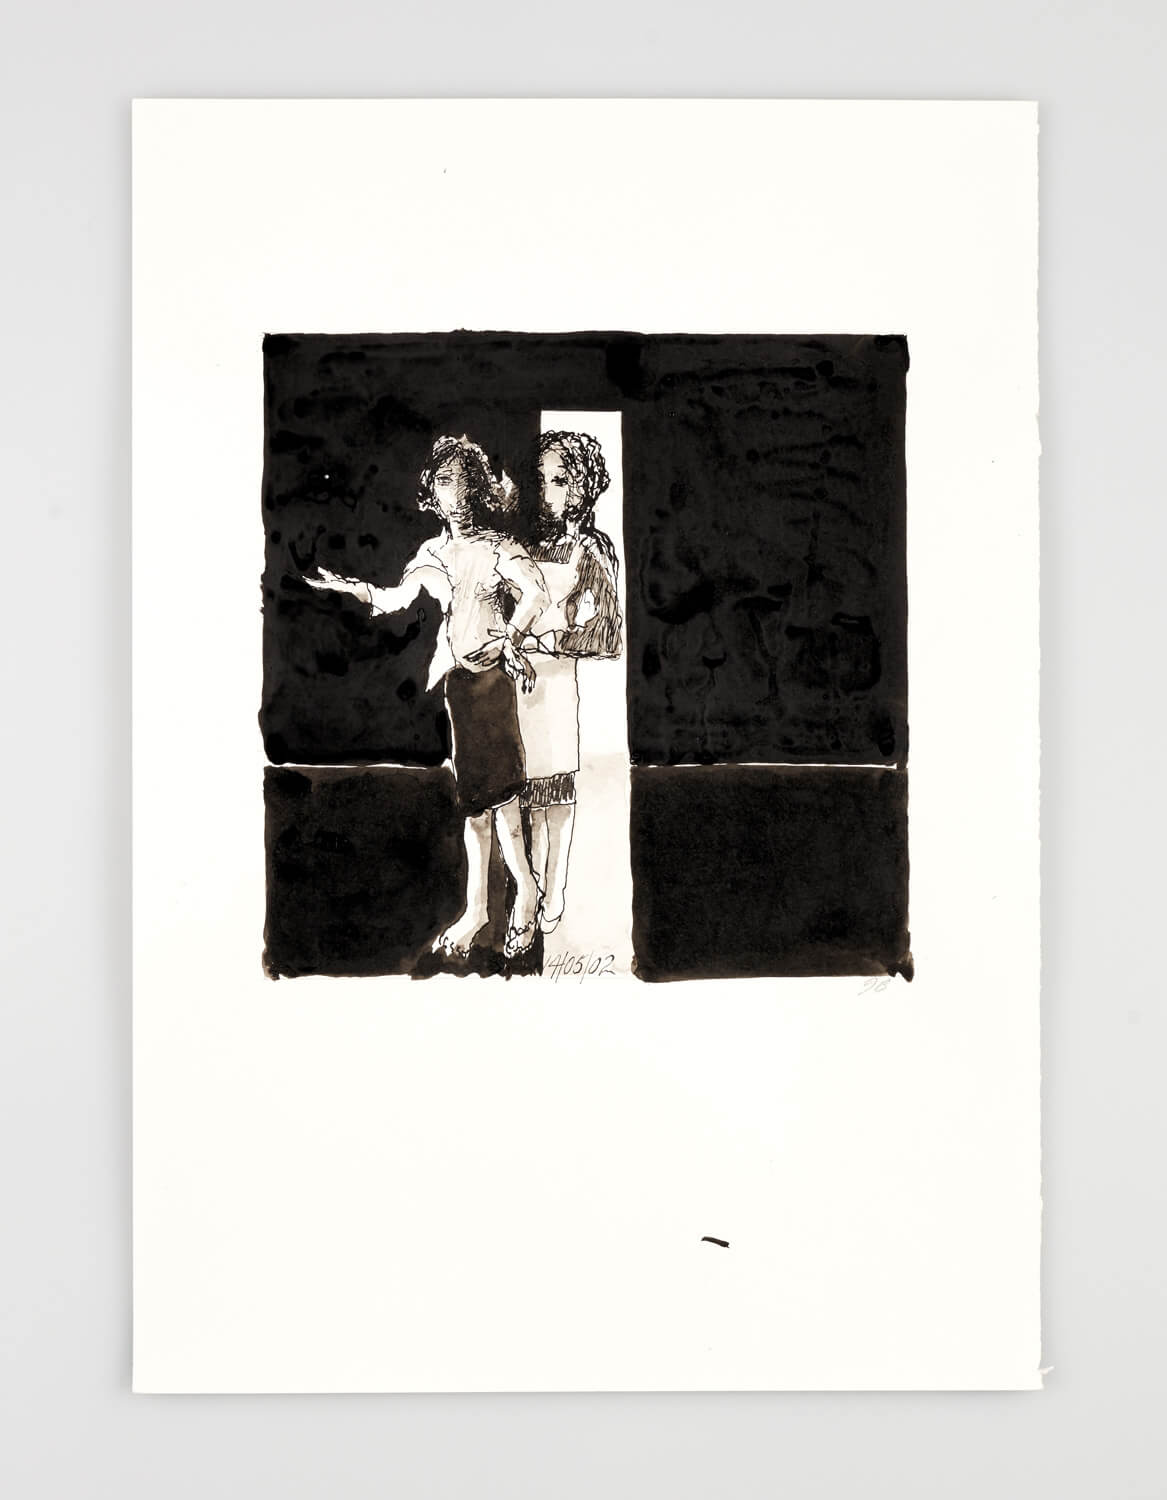 JB072 - Two Women - Being dressed - 2002 - 50 x 35 cm - Indian ink and wash on paper